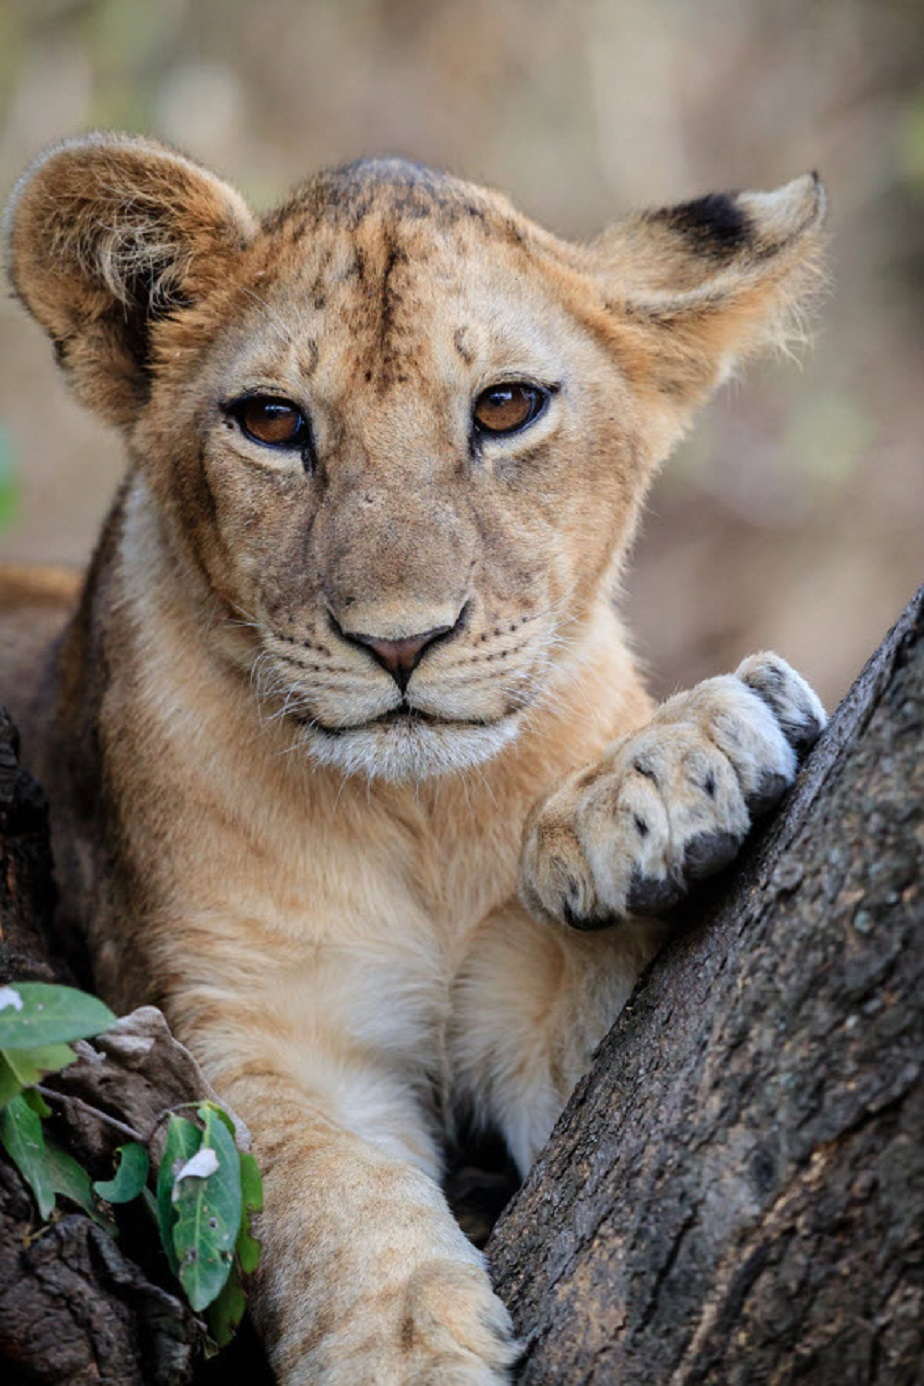 Lion Cub - Wix Photography